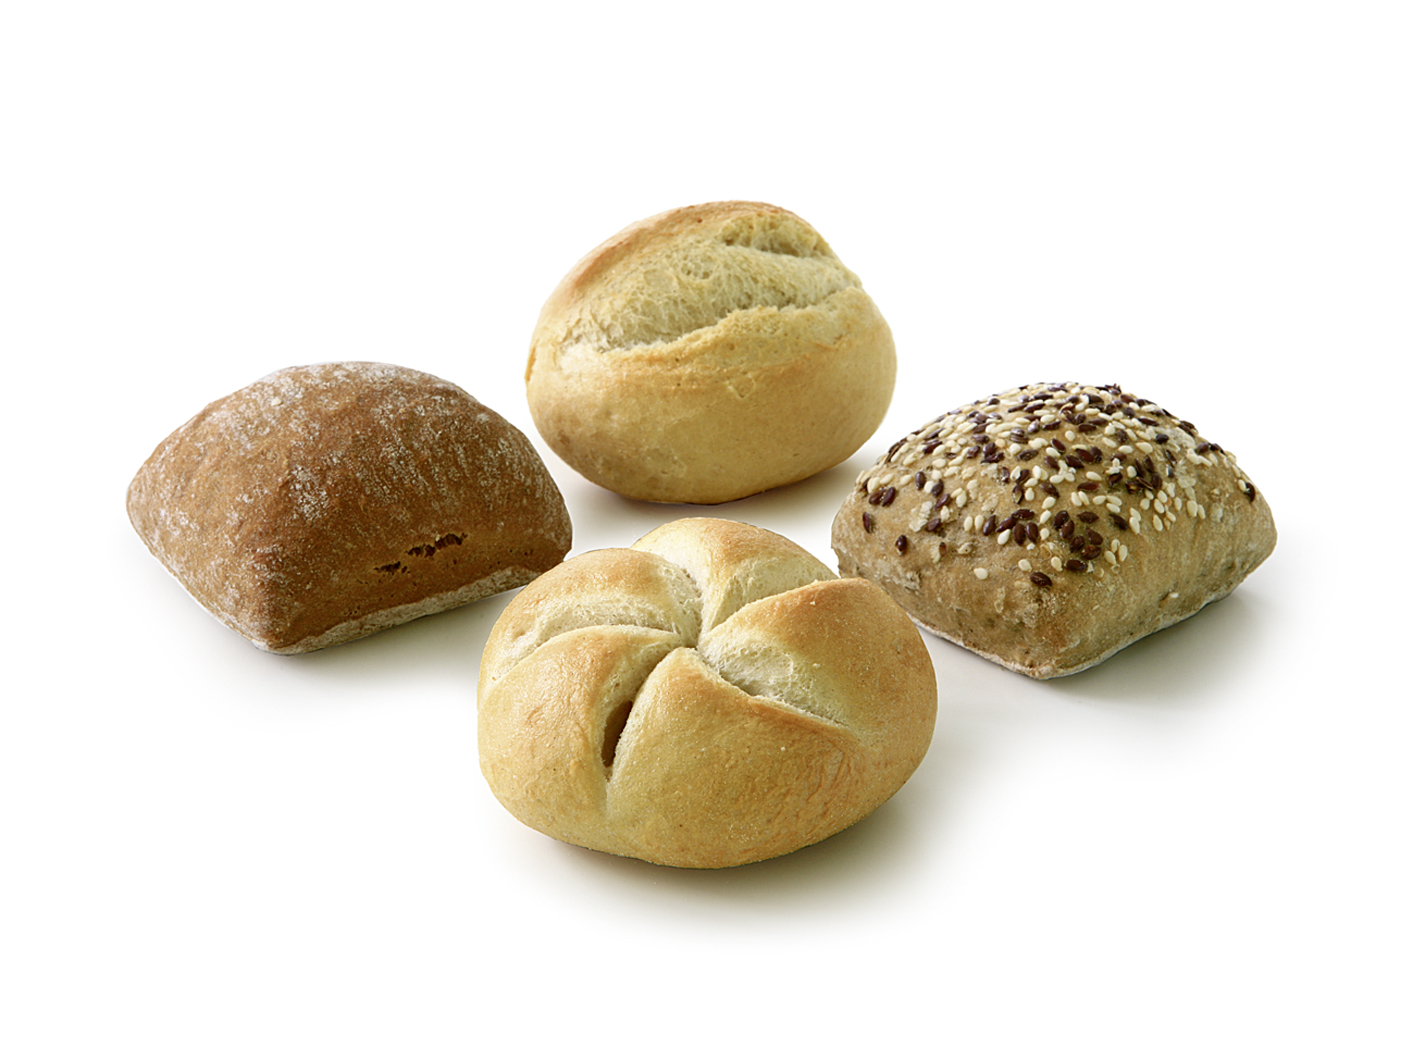 Mini Roll Variety from the Stone Oven - Mini-mix of the varieties: schusterjungs, multigrain roll, sliced roll and kaiser roll